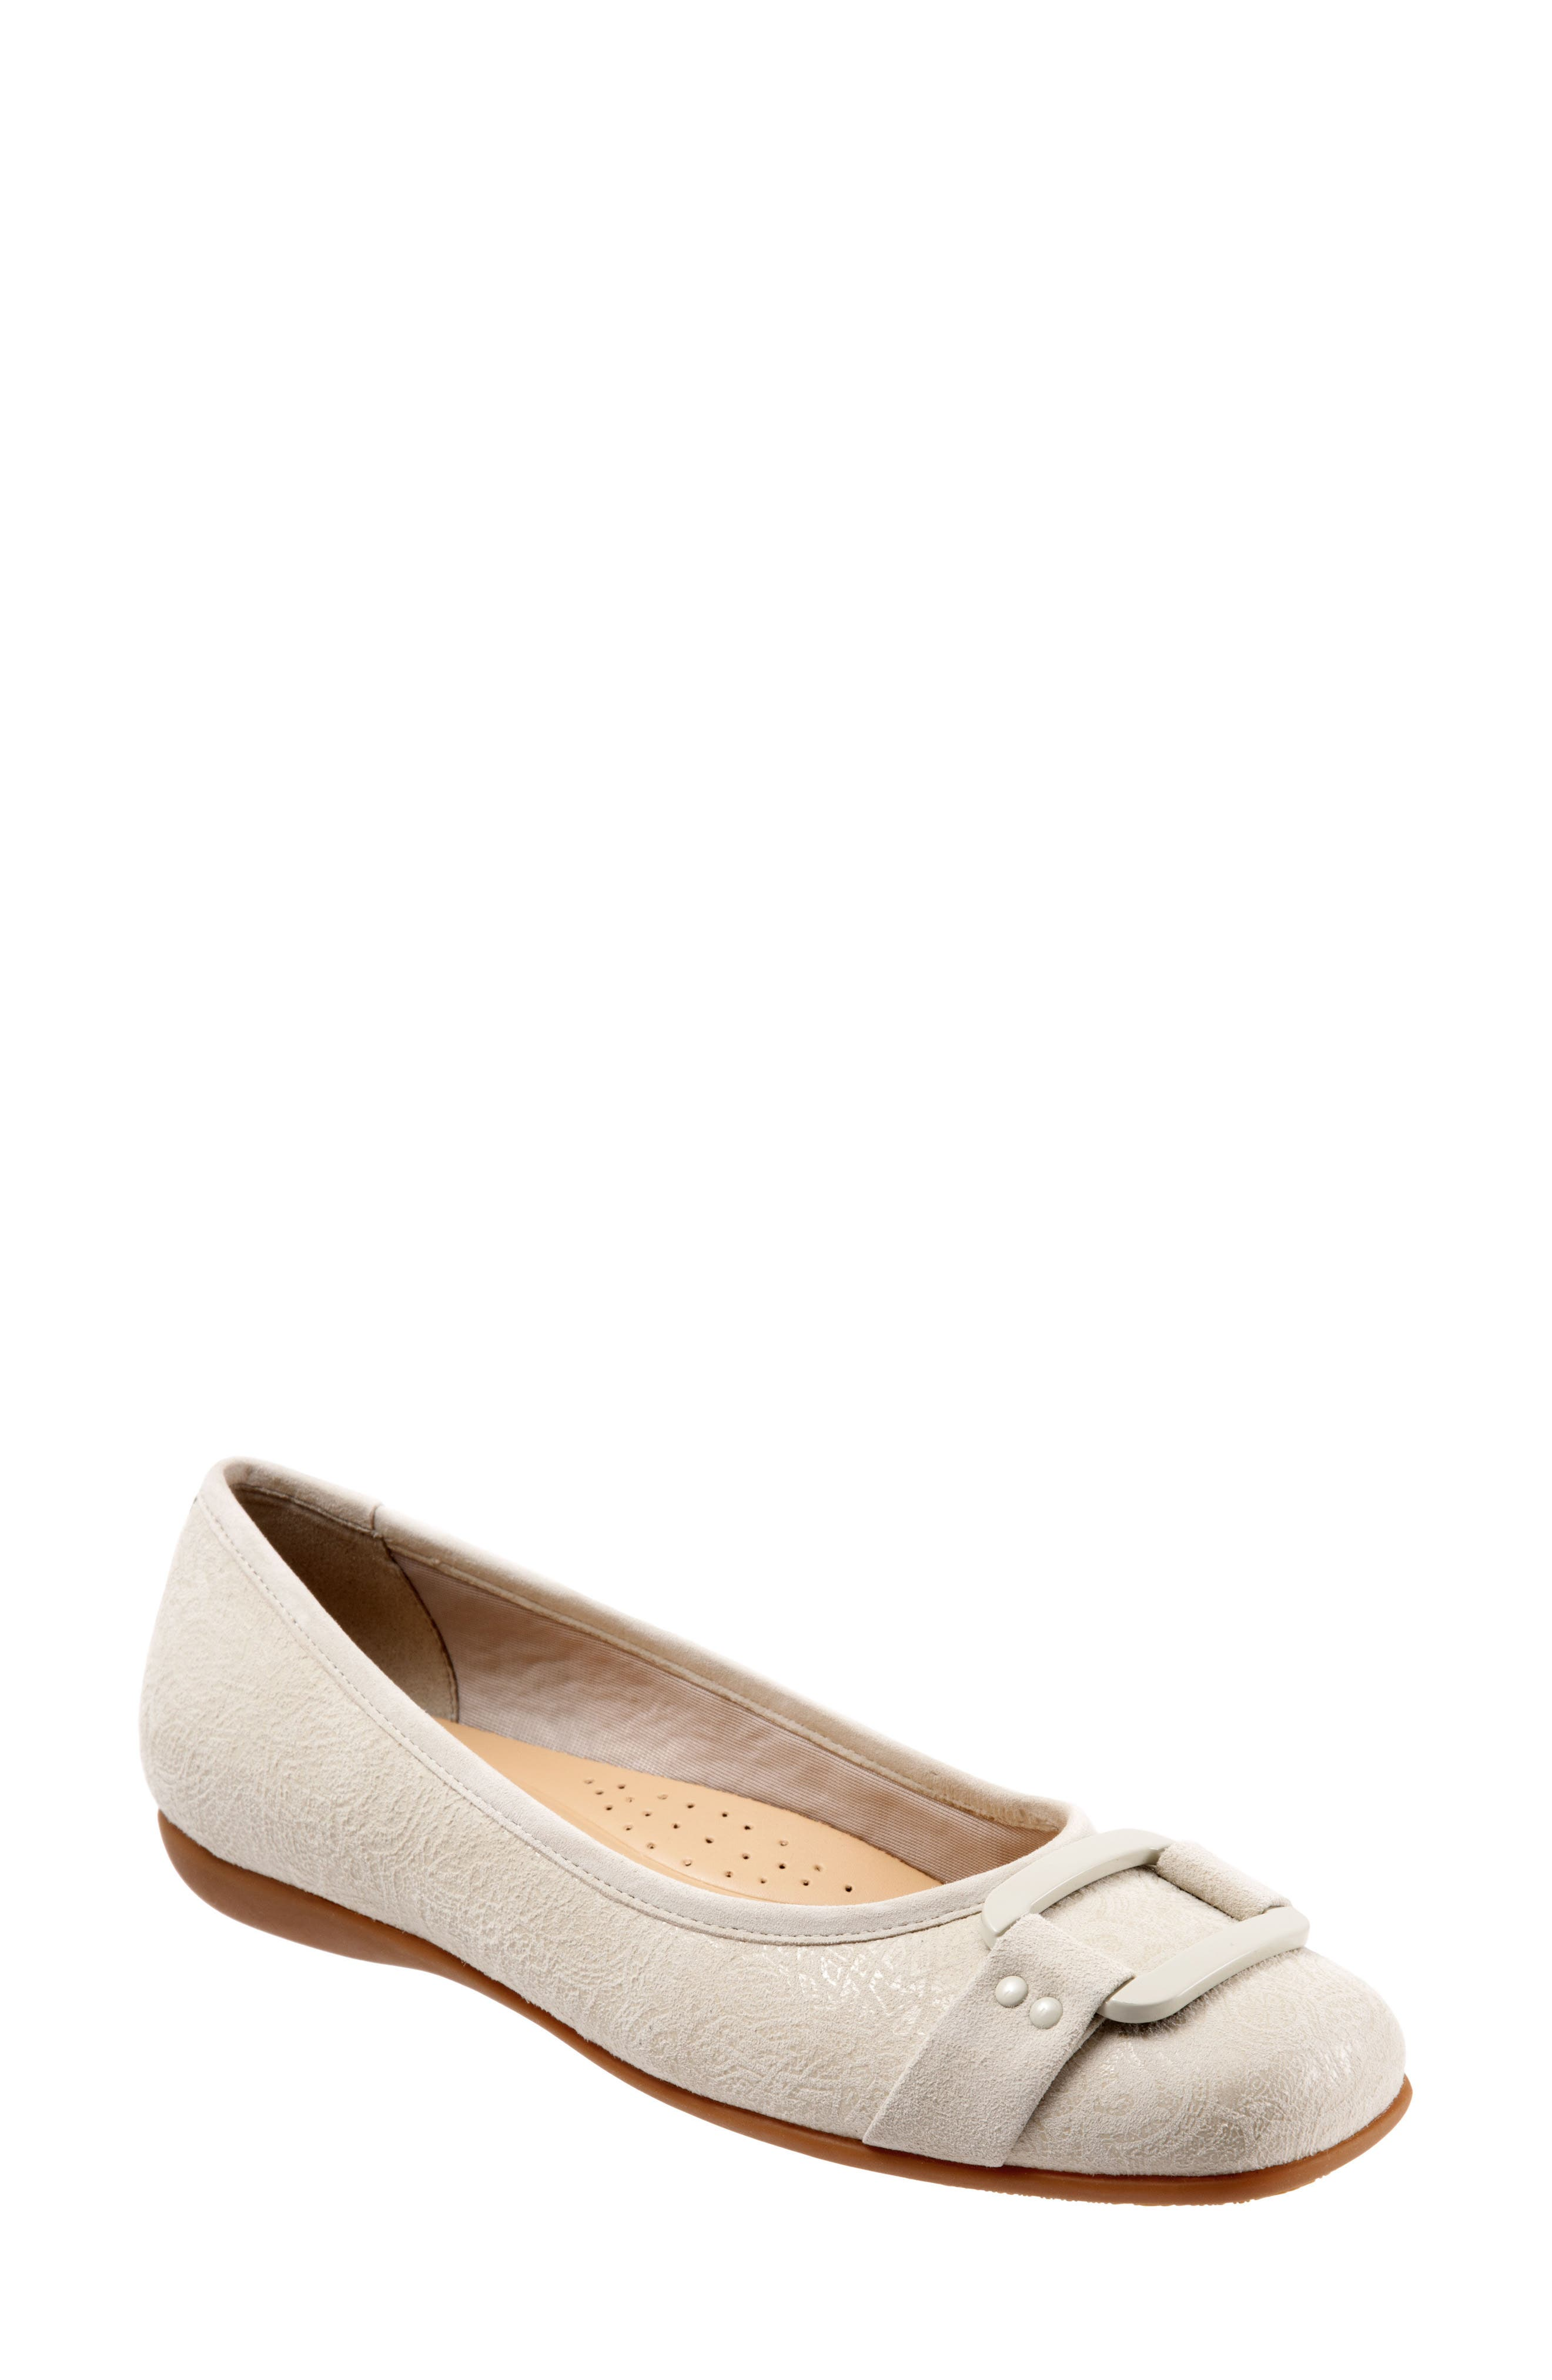 'Sizzle Signature' Flat,                             Main thumbnail 1, color,                             Off White Leather